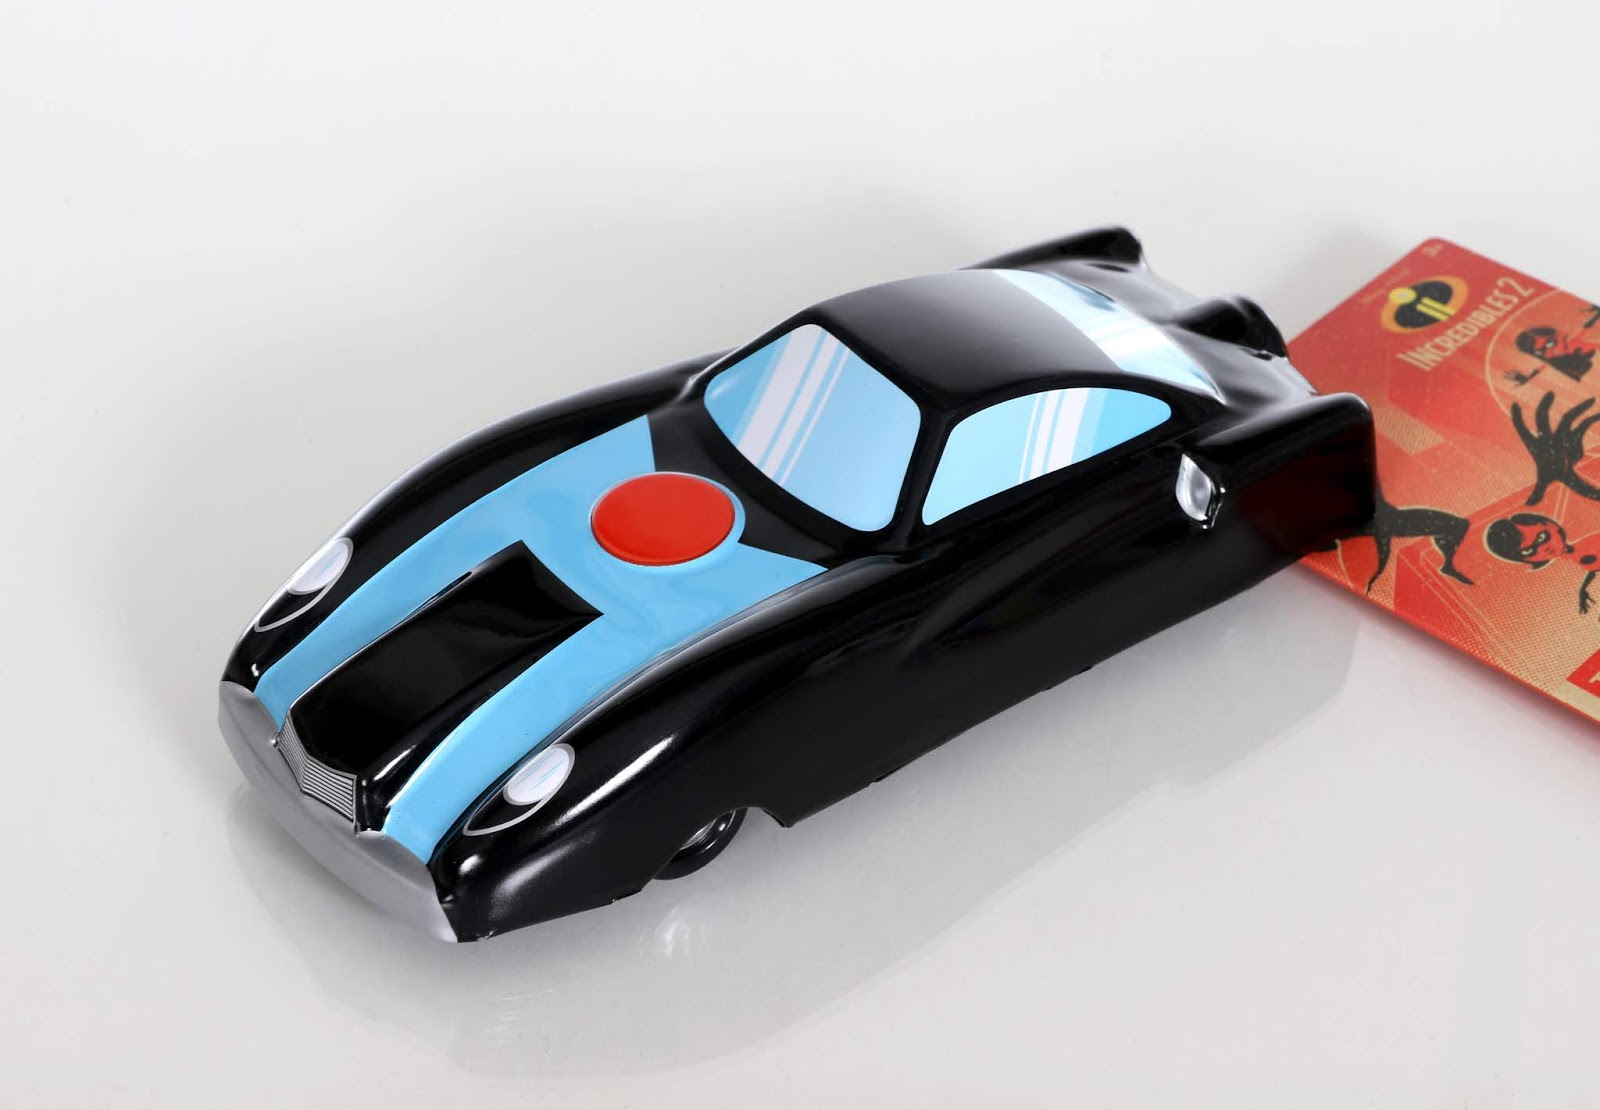 Incredibles 2 The Incredibile Tin Pullback toy